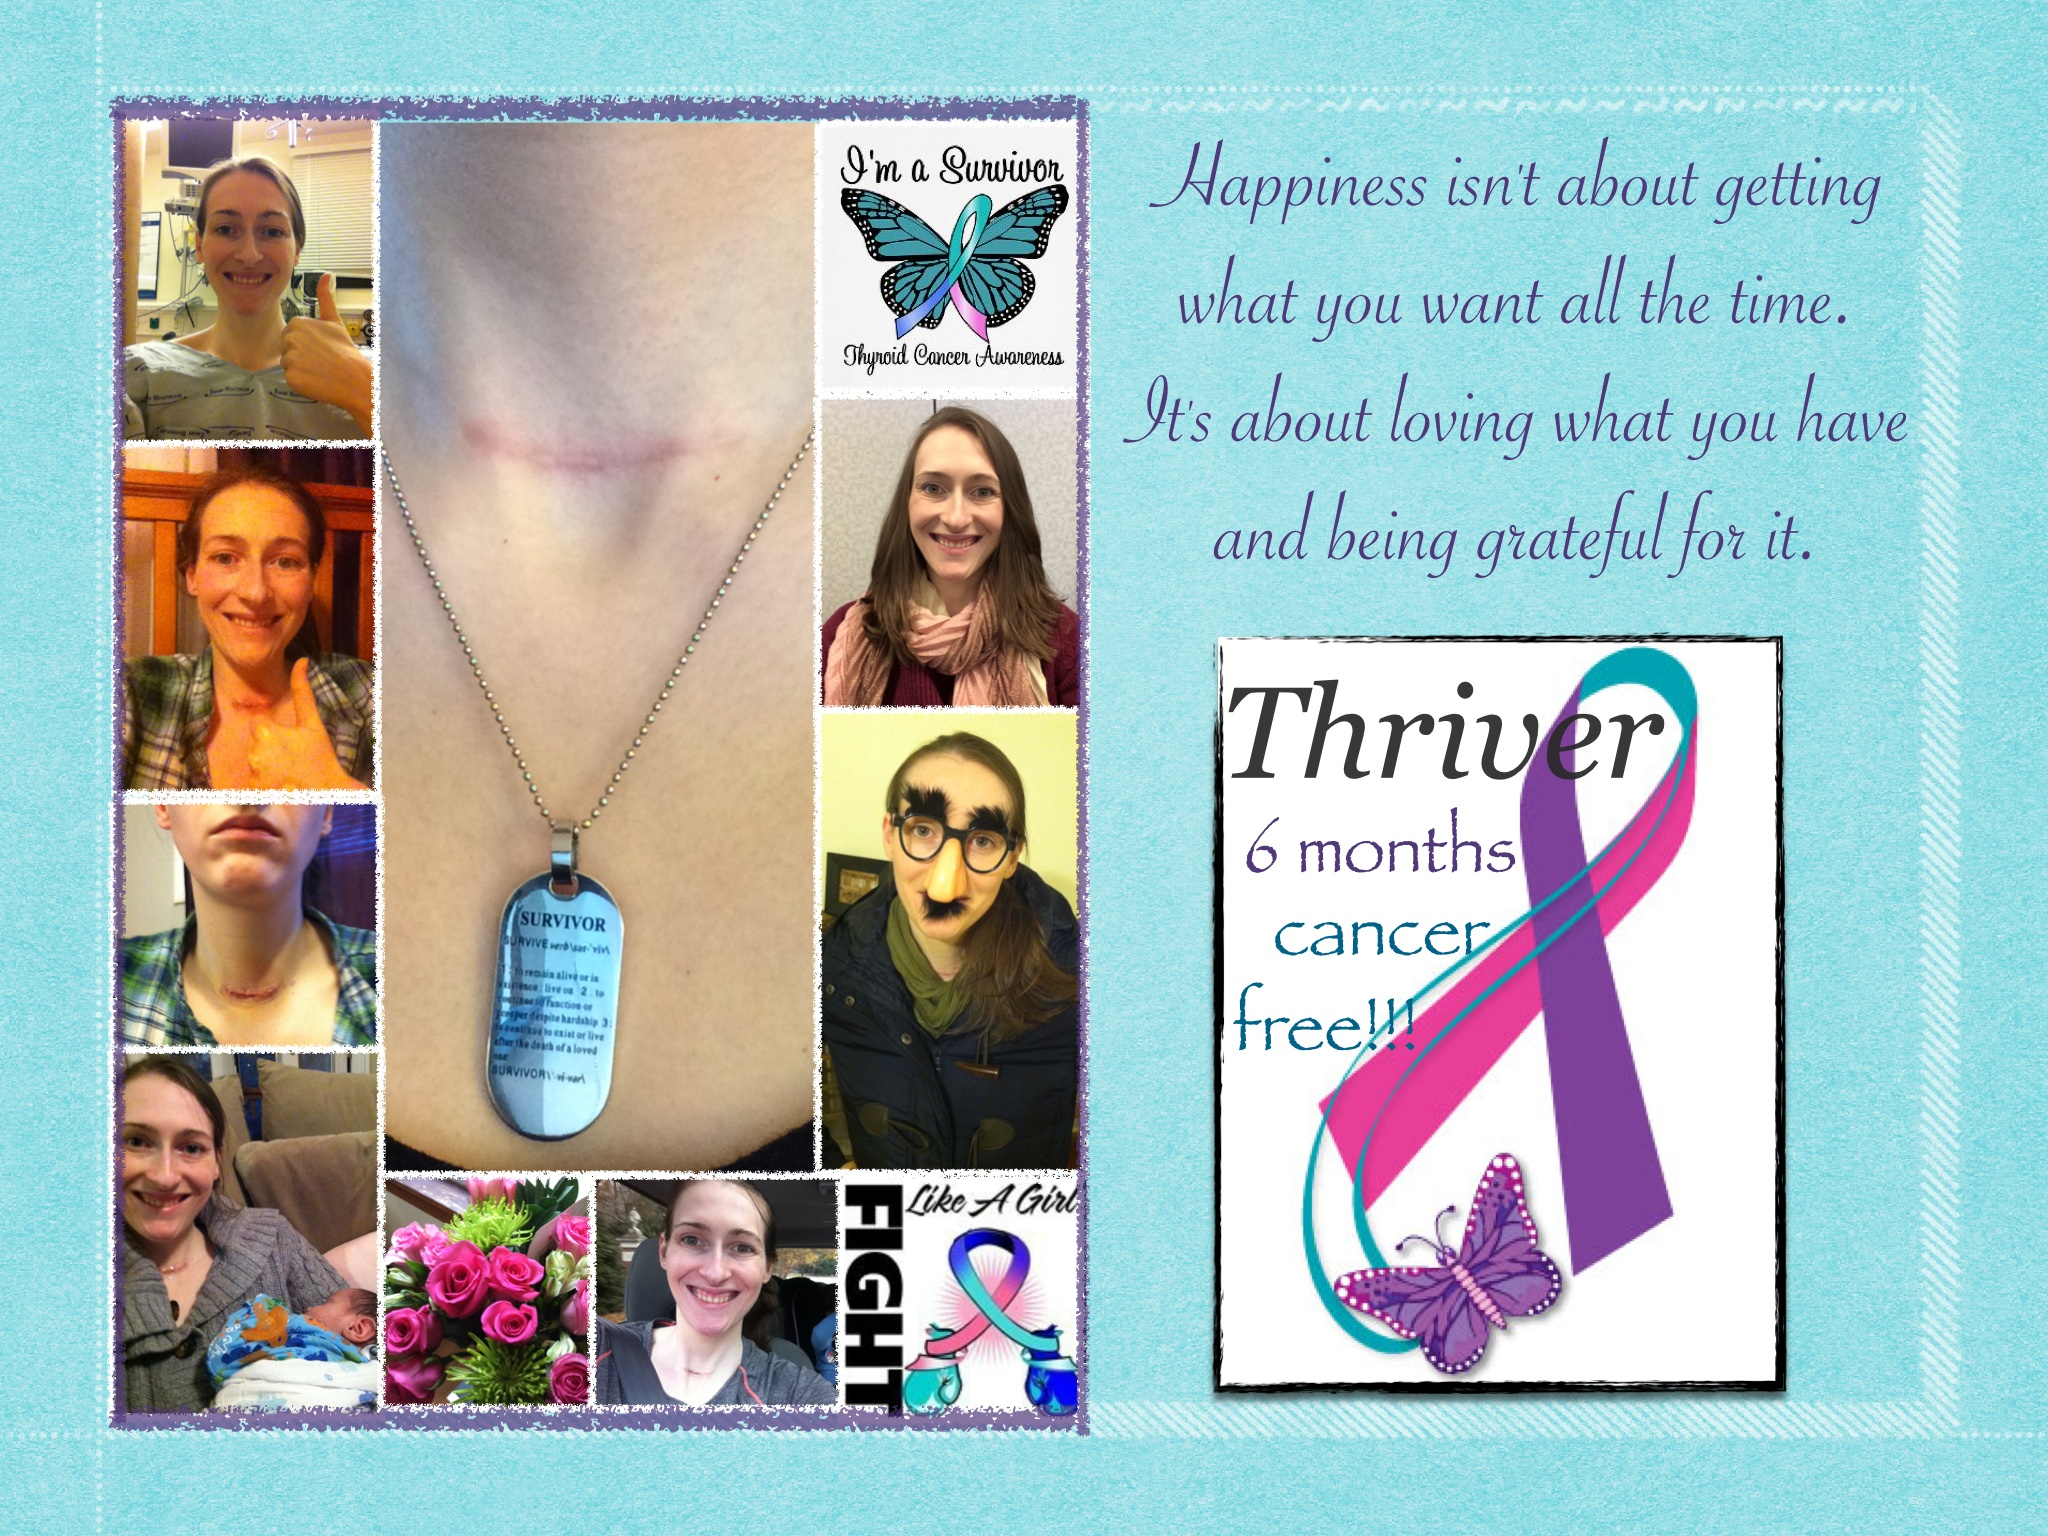 Thyroid Cancer Image